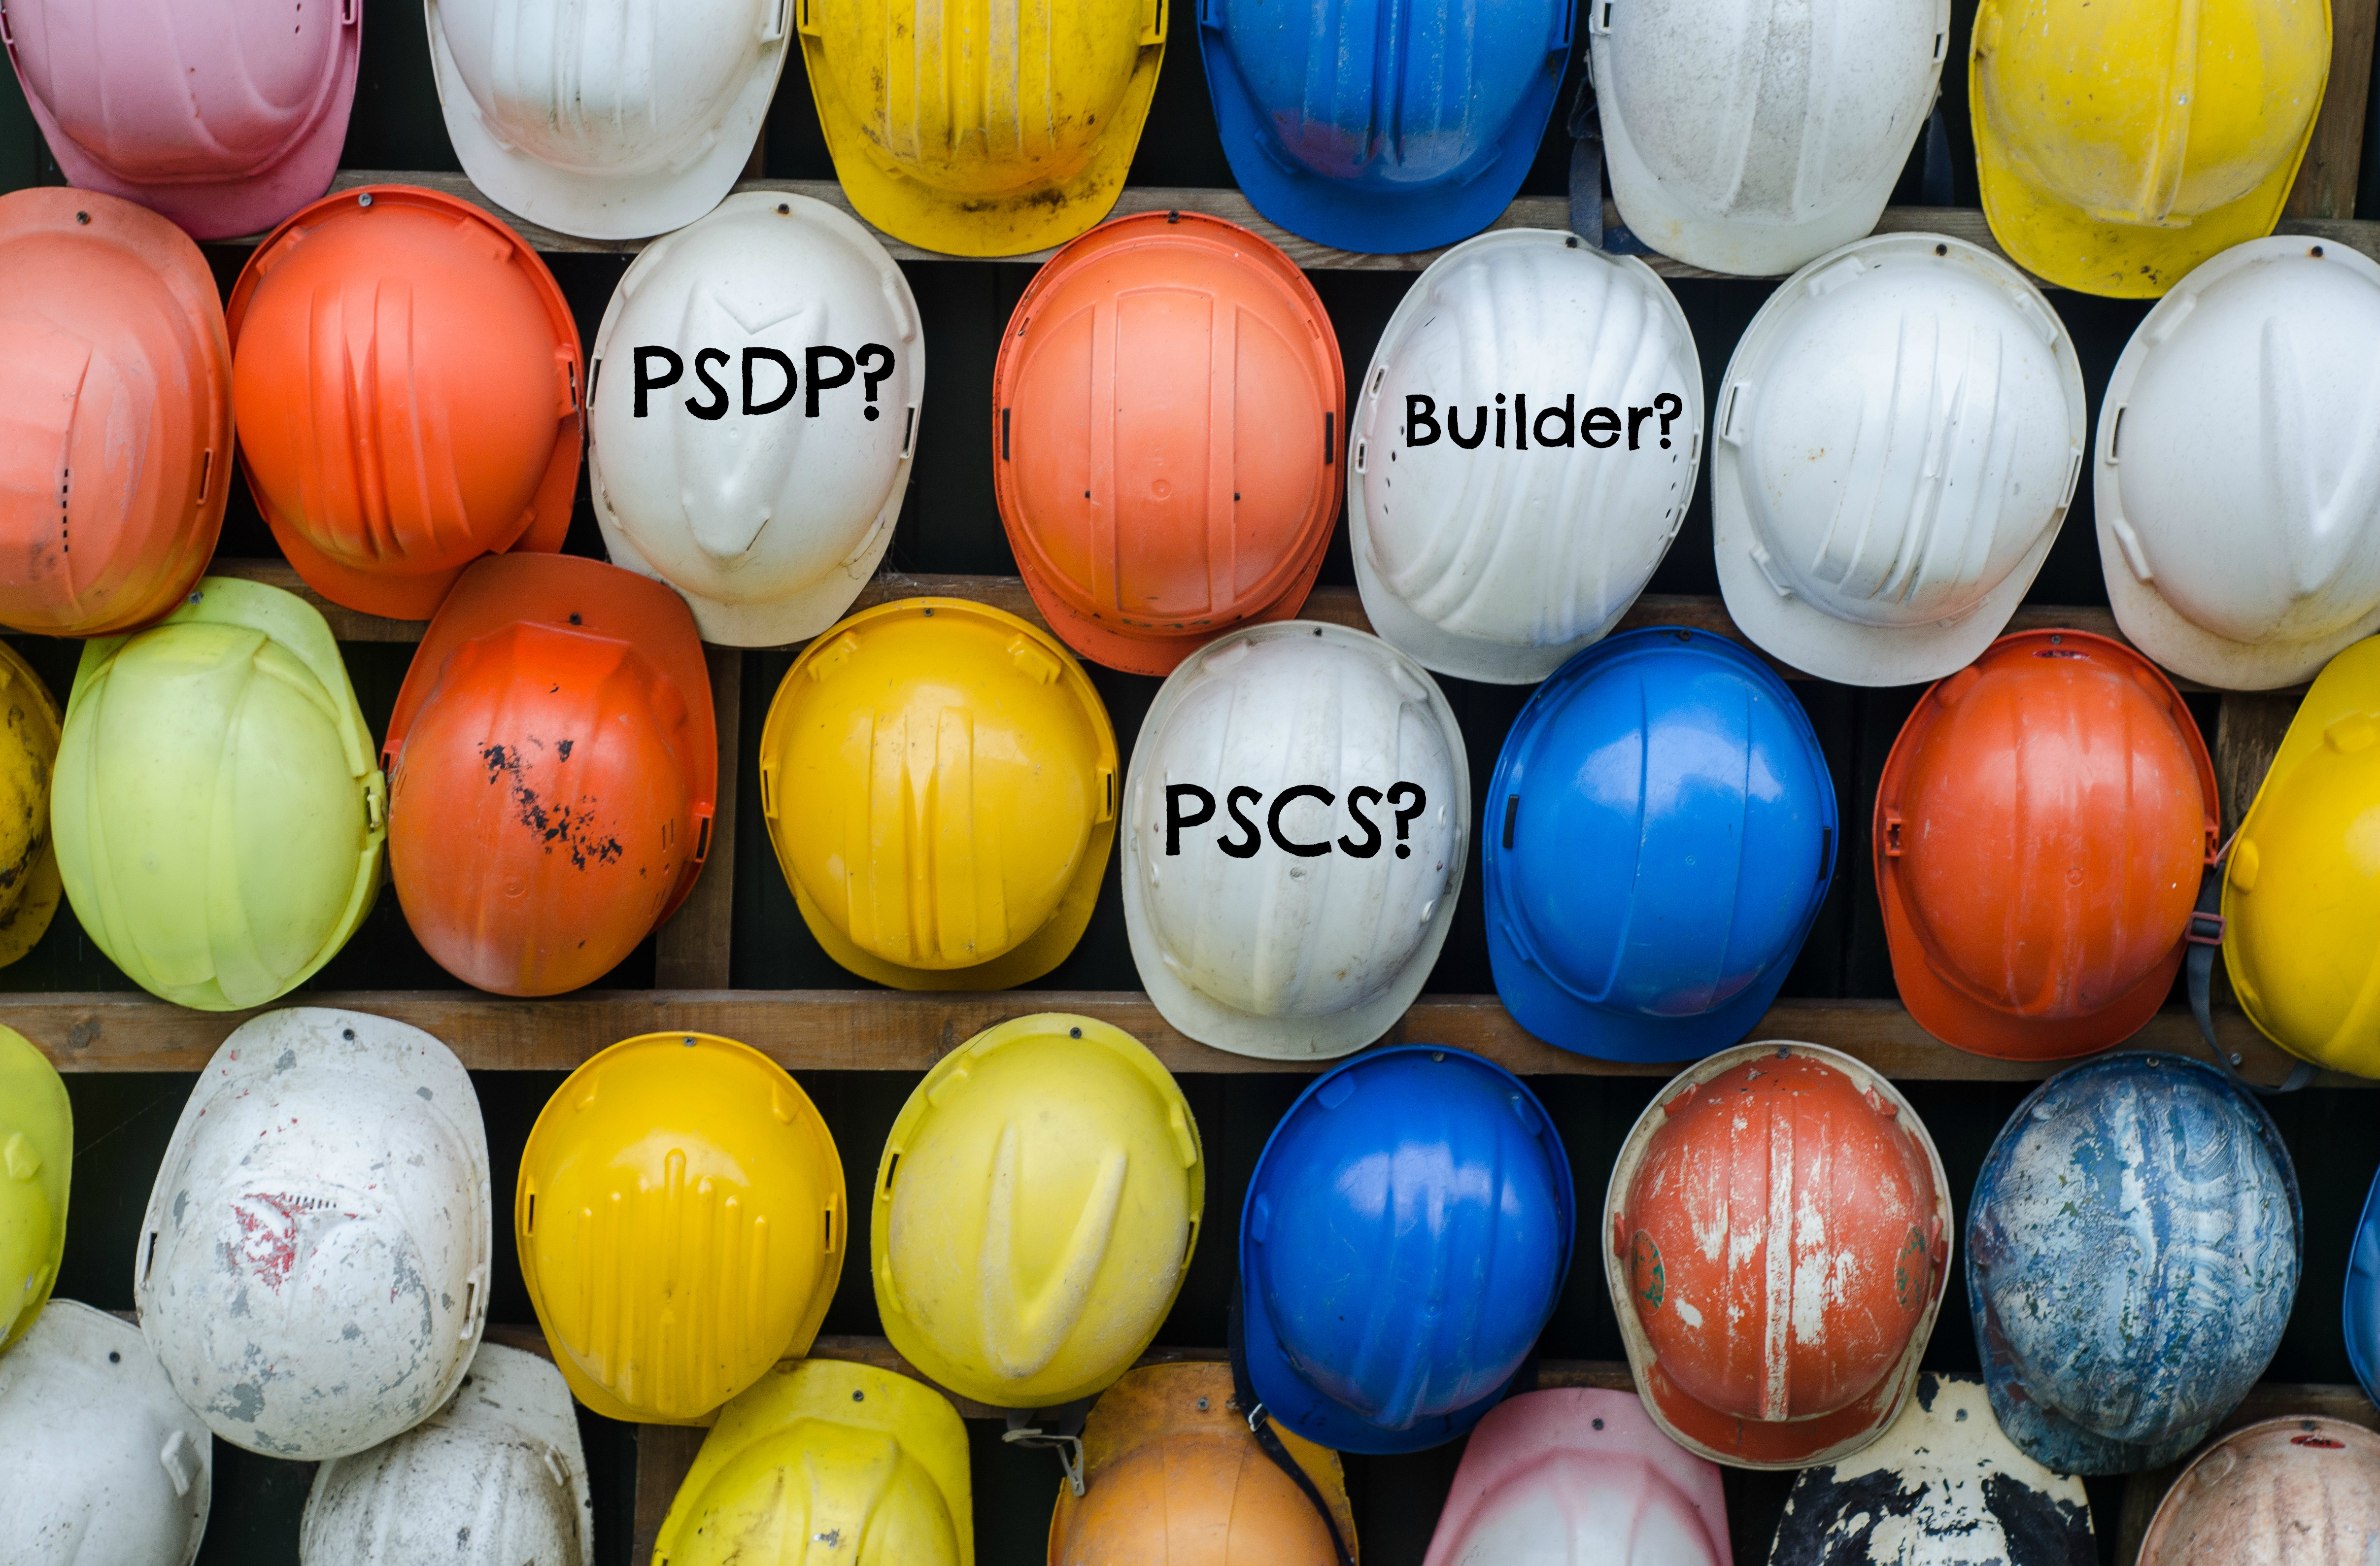 Construction Hard Hats With Psdp And Pscsp And Builder Written In Black Writting On Them